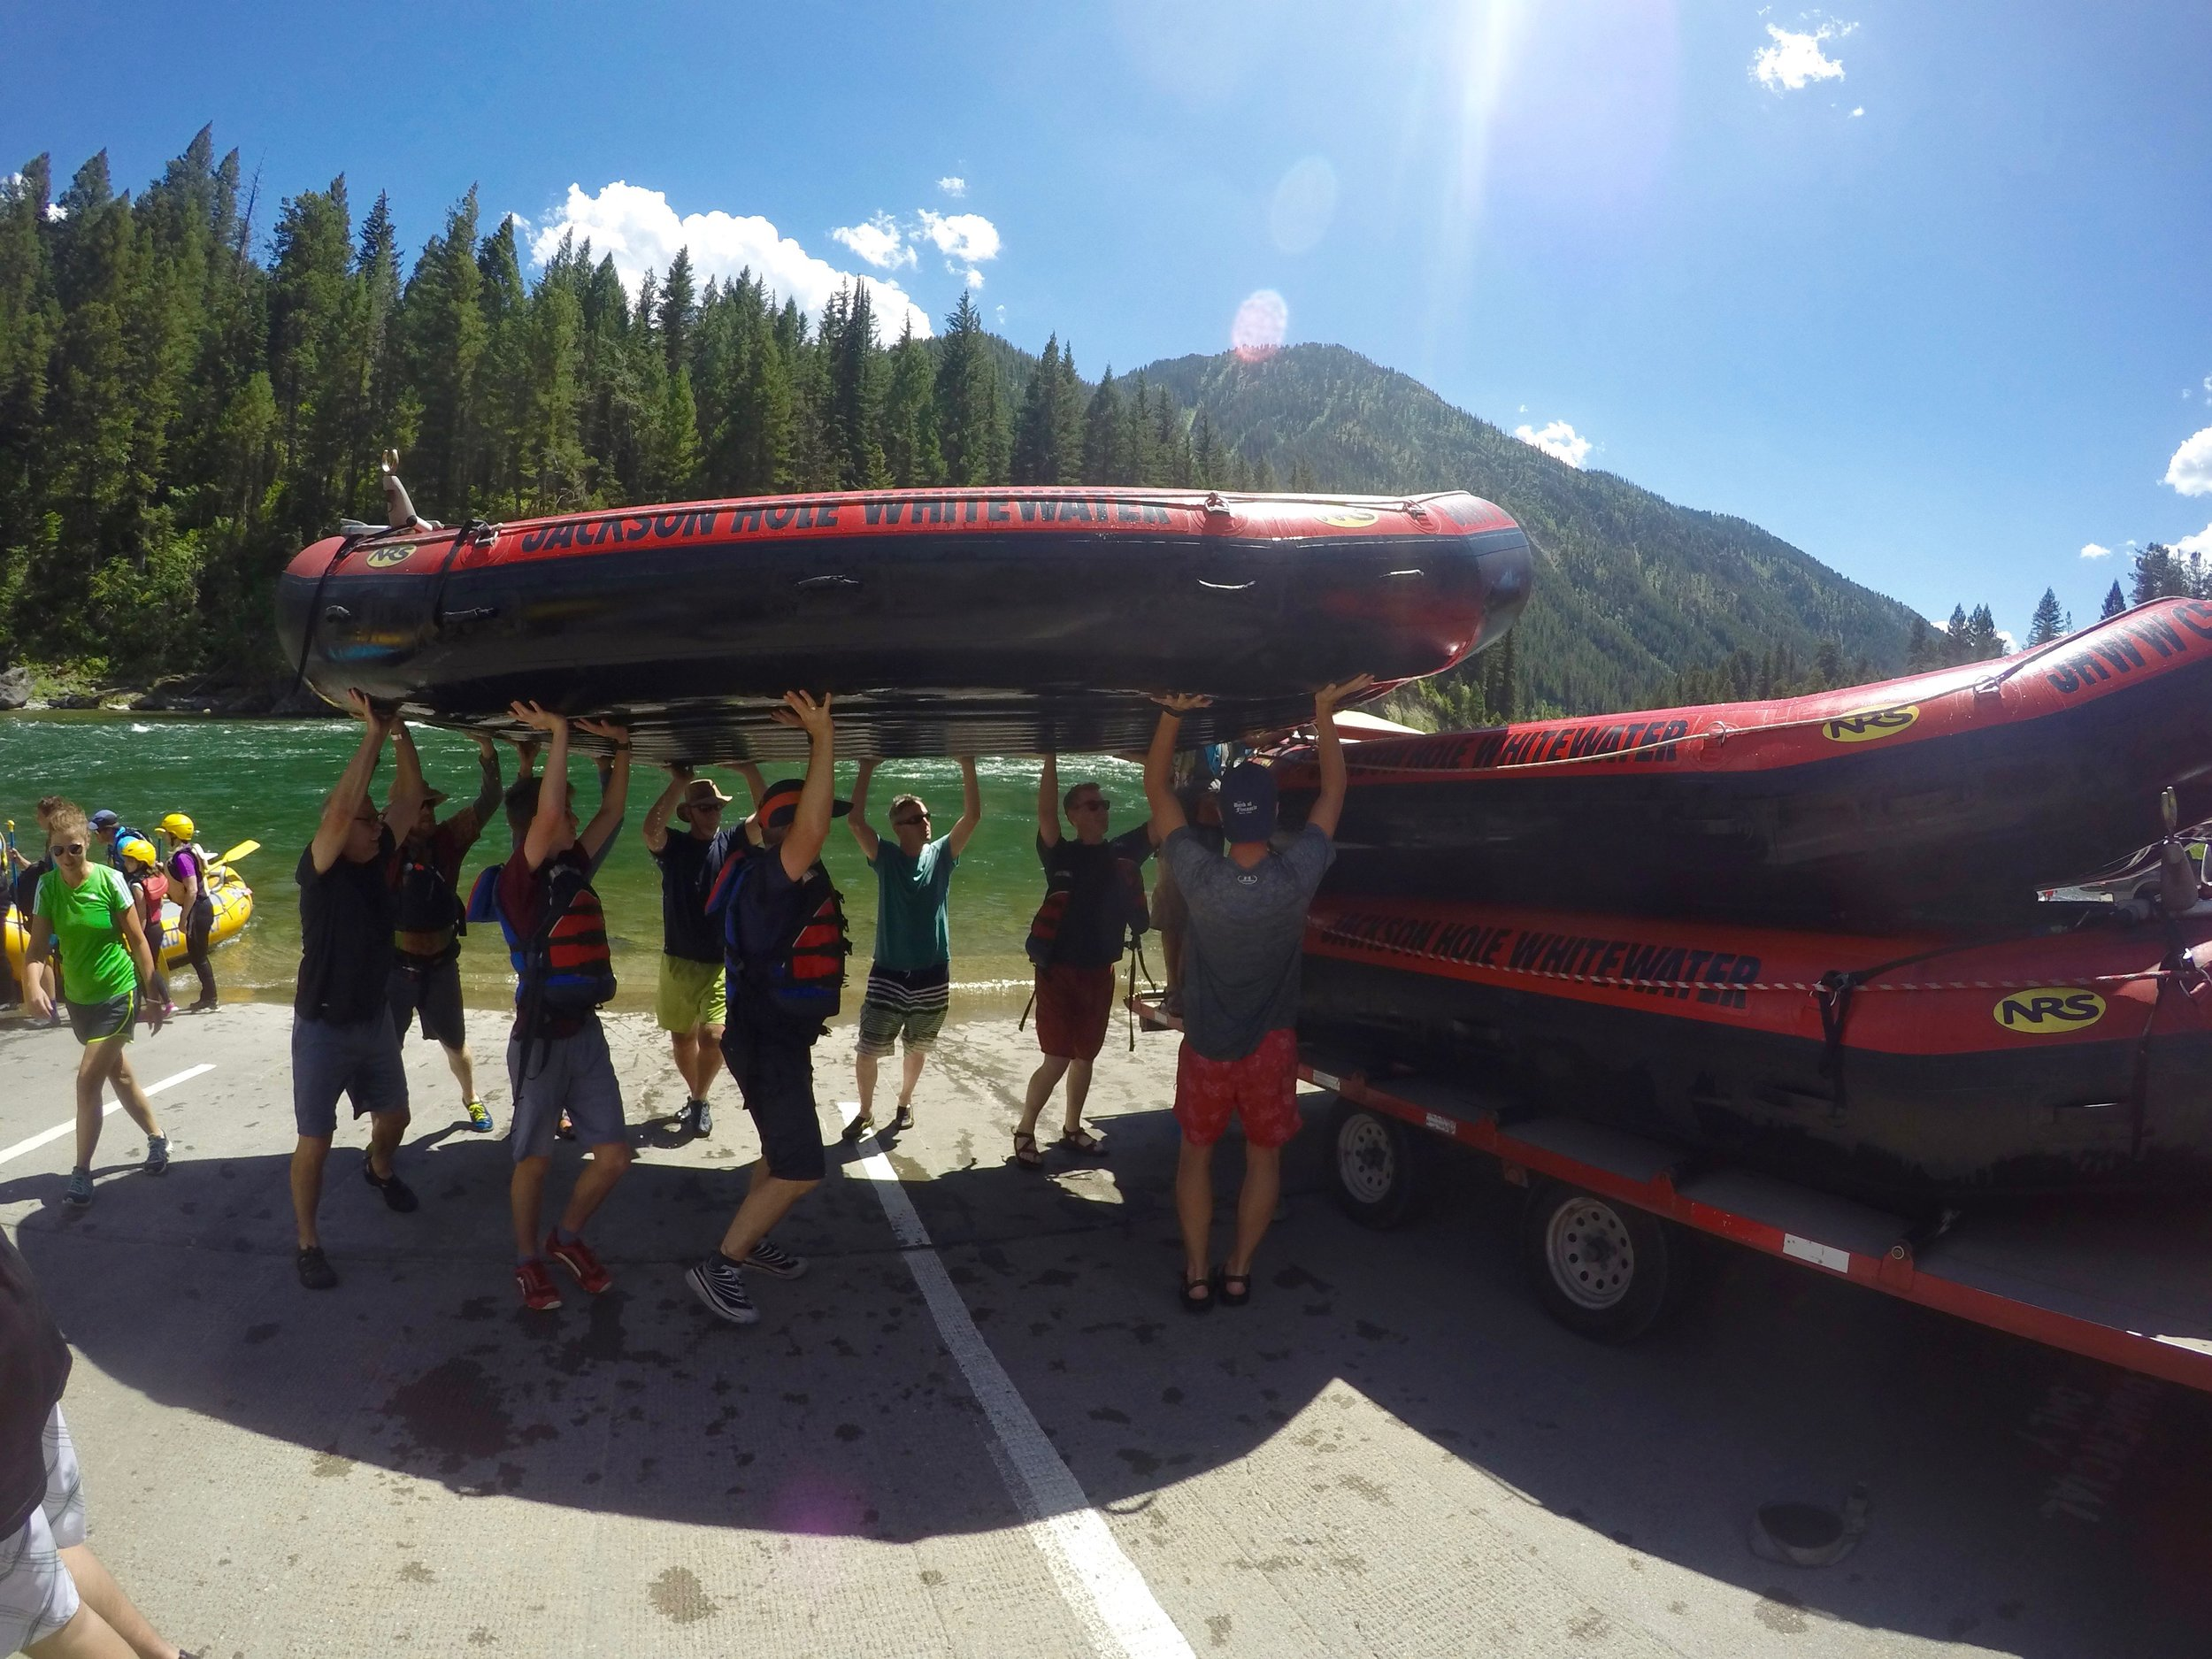 The boys had to help put all the rafts on the trailers